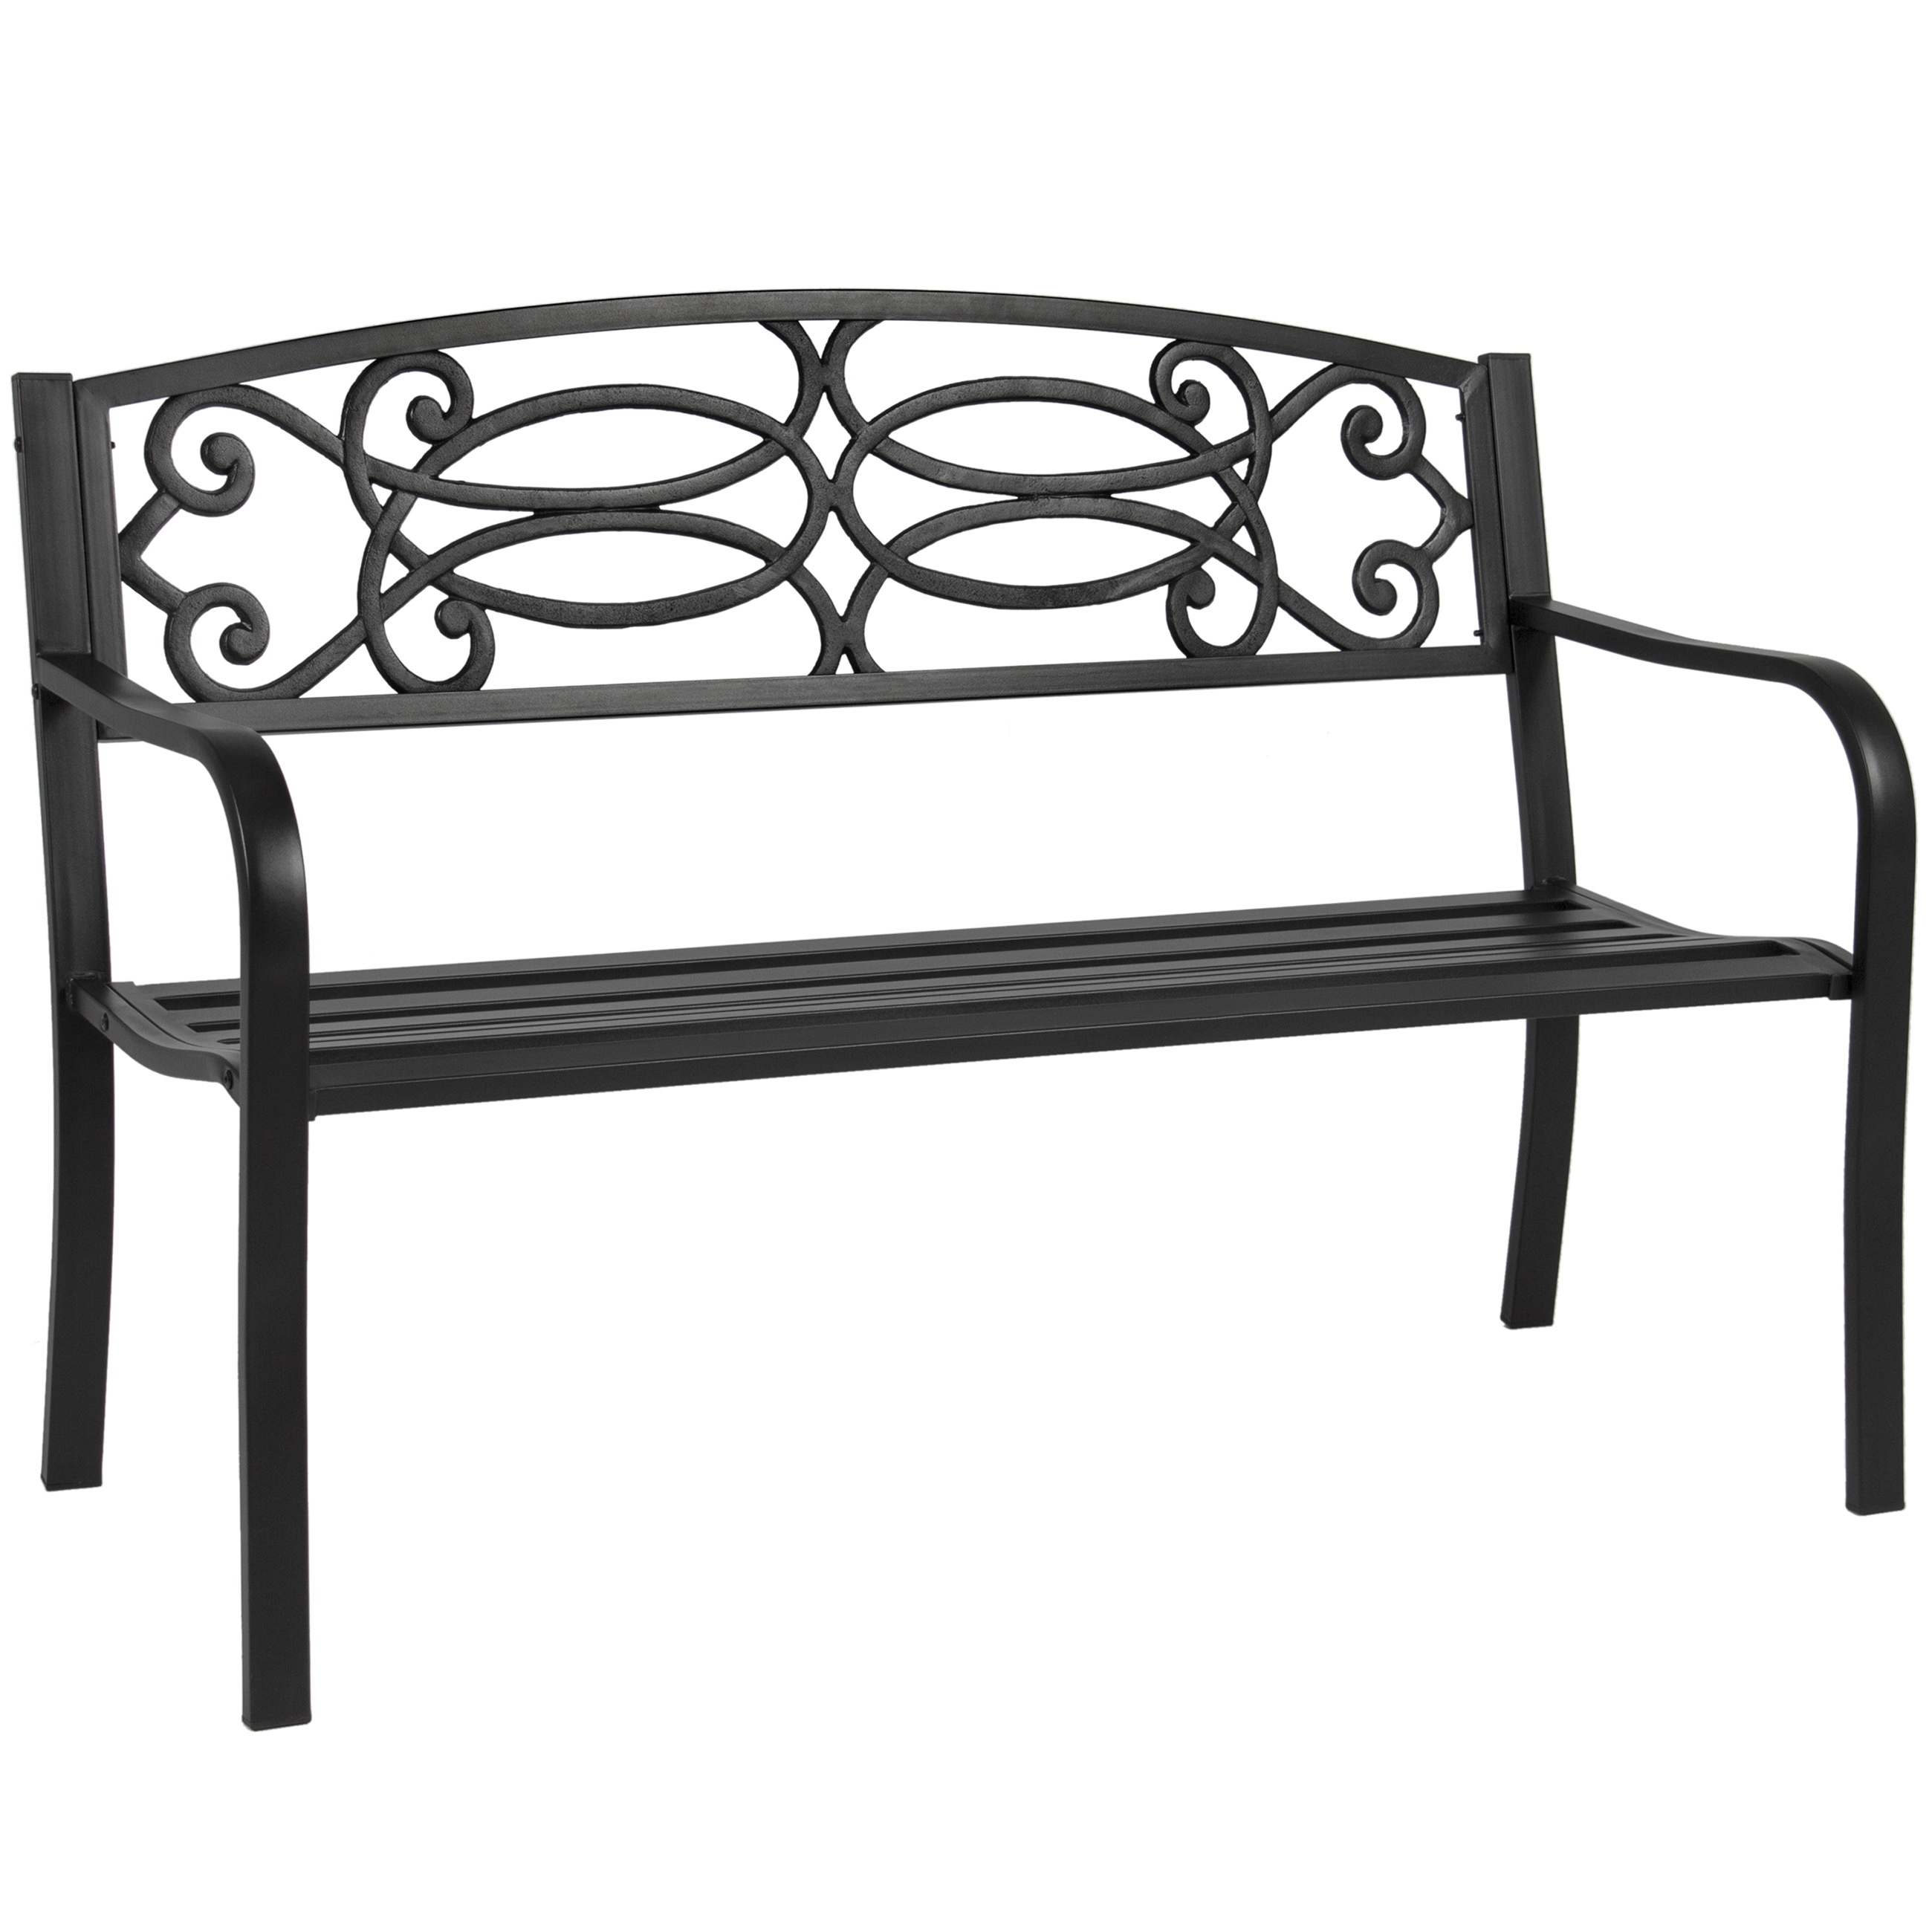 "Best Choice Products BCP 50"" Outdoor Patio Garden Bench Steel Frame Park Yard Porch... by"